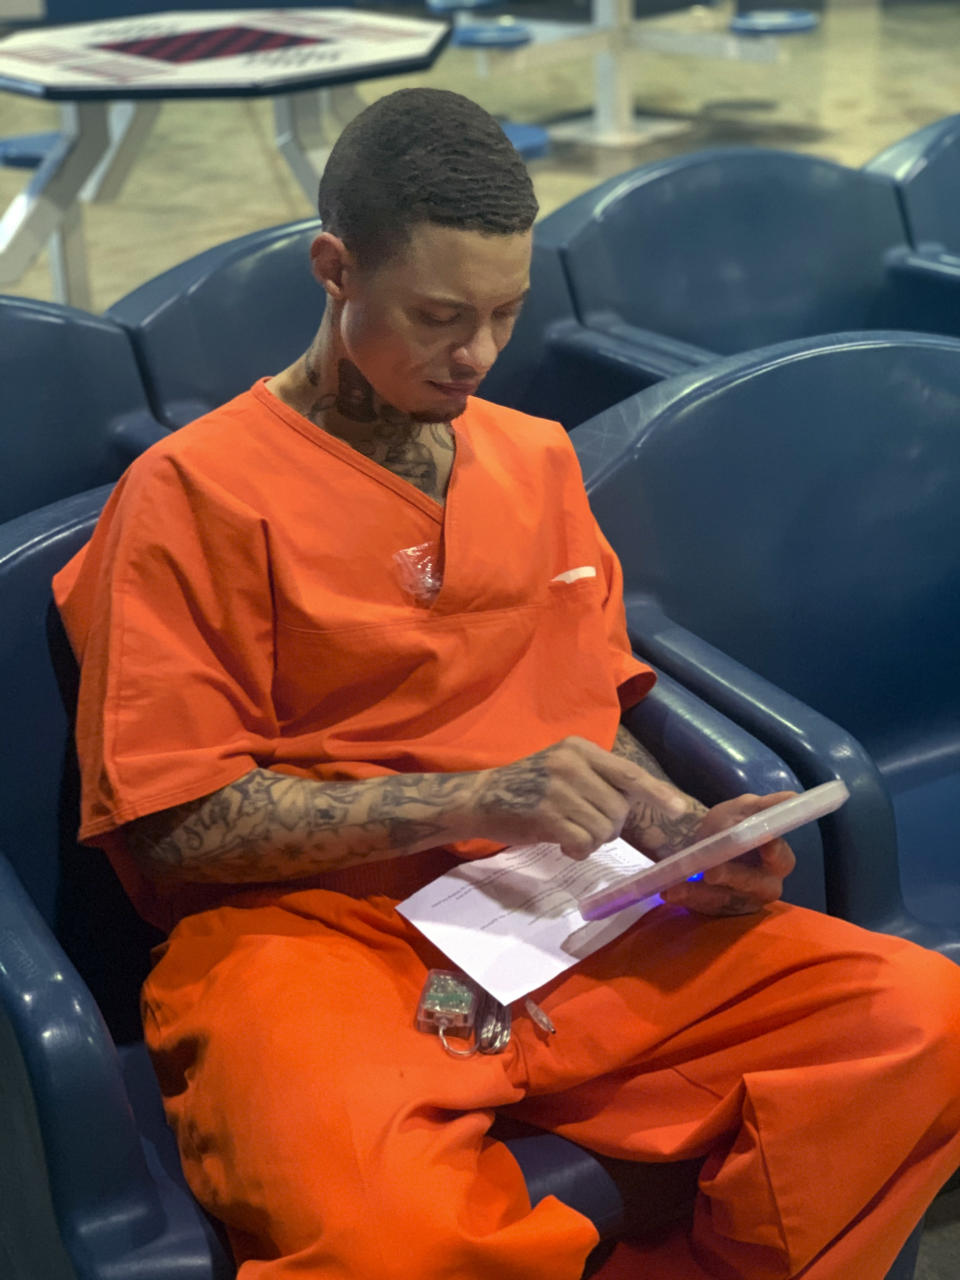 In a photo provided by the North Fork Correctional Center in Sayre, Okla., on Tuesday, June 9, 2021, inmate Byron Robinson works on a new Securus tablet, which are being provided for free to Oklahoma inmates as part of a new program by the Department of Corrections. Robinson, who has been incarcerated since 2005, the same year YouTube was founded, said it was the first time he'd ever held a computer tablet. The devices will include free content like access to a law library, along with some podcasts, books and educational materials. (Lance West/Oklahoma Department of Corrections via AP)